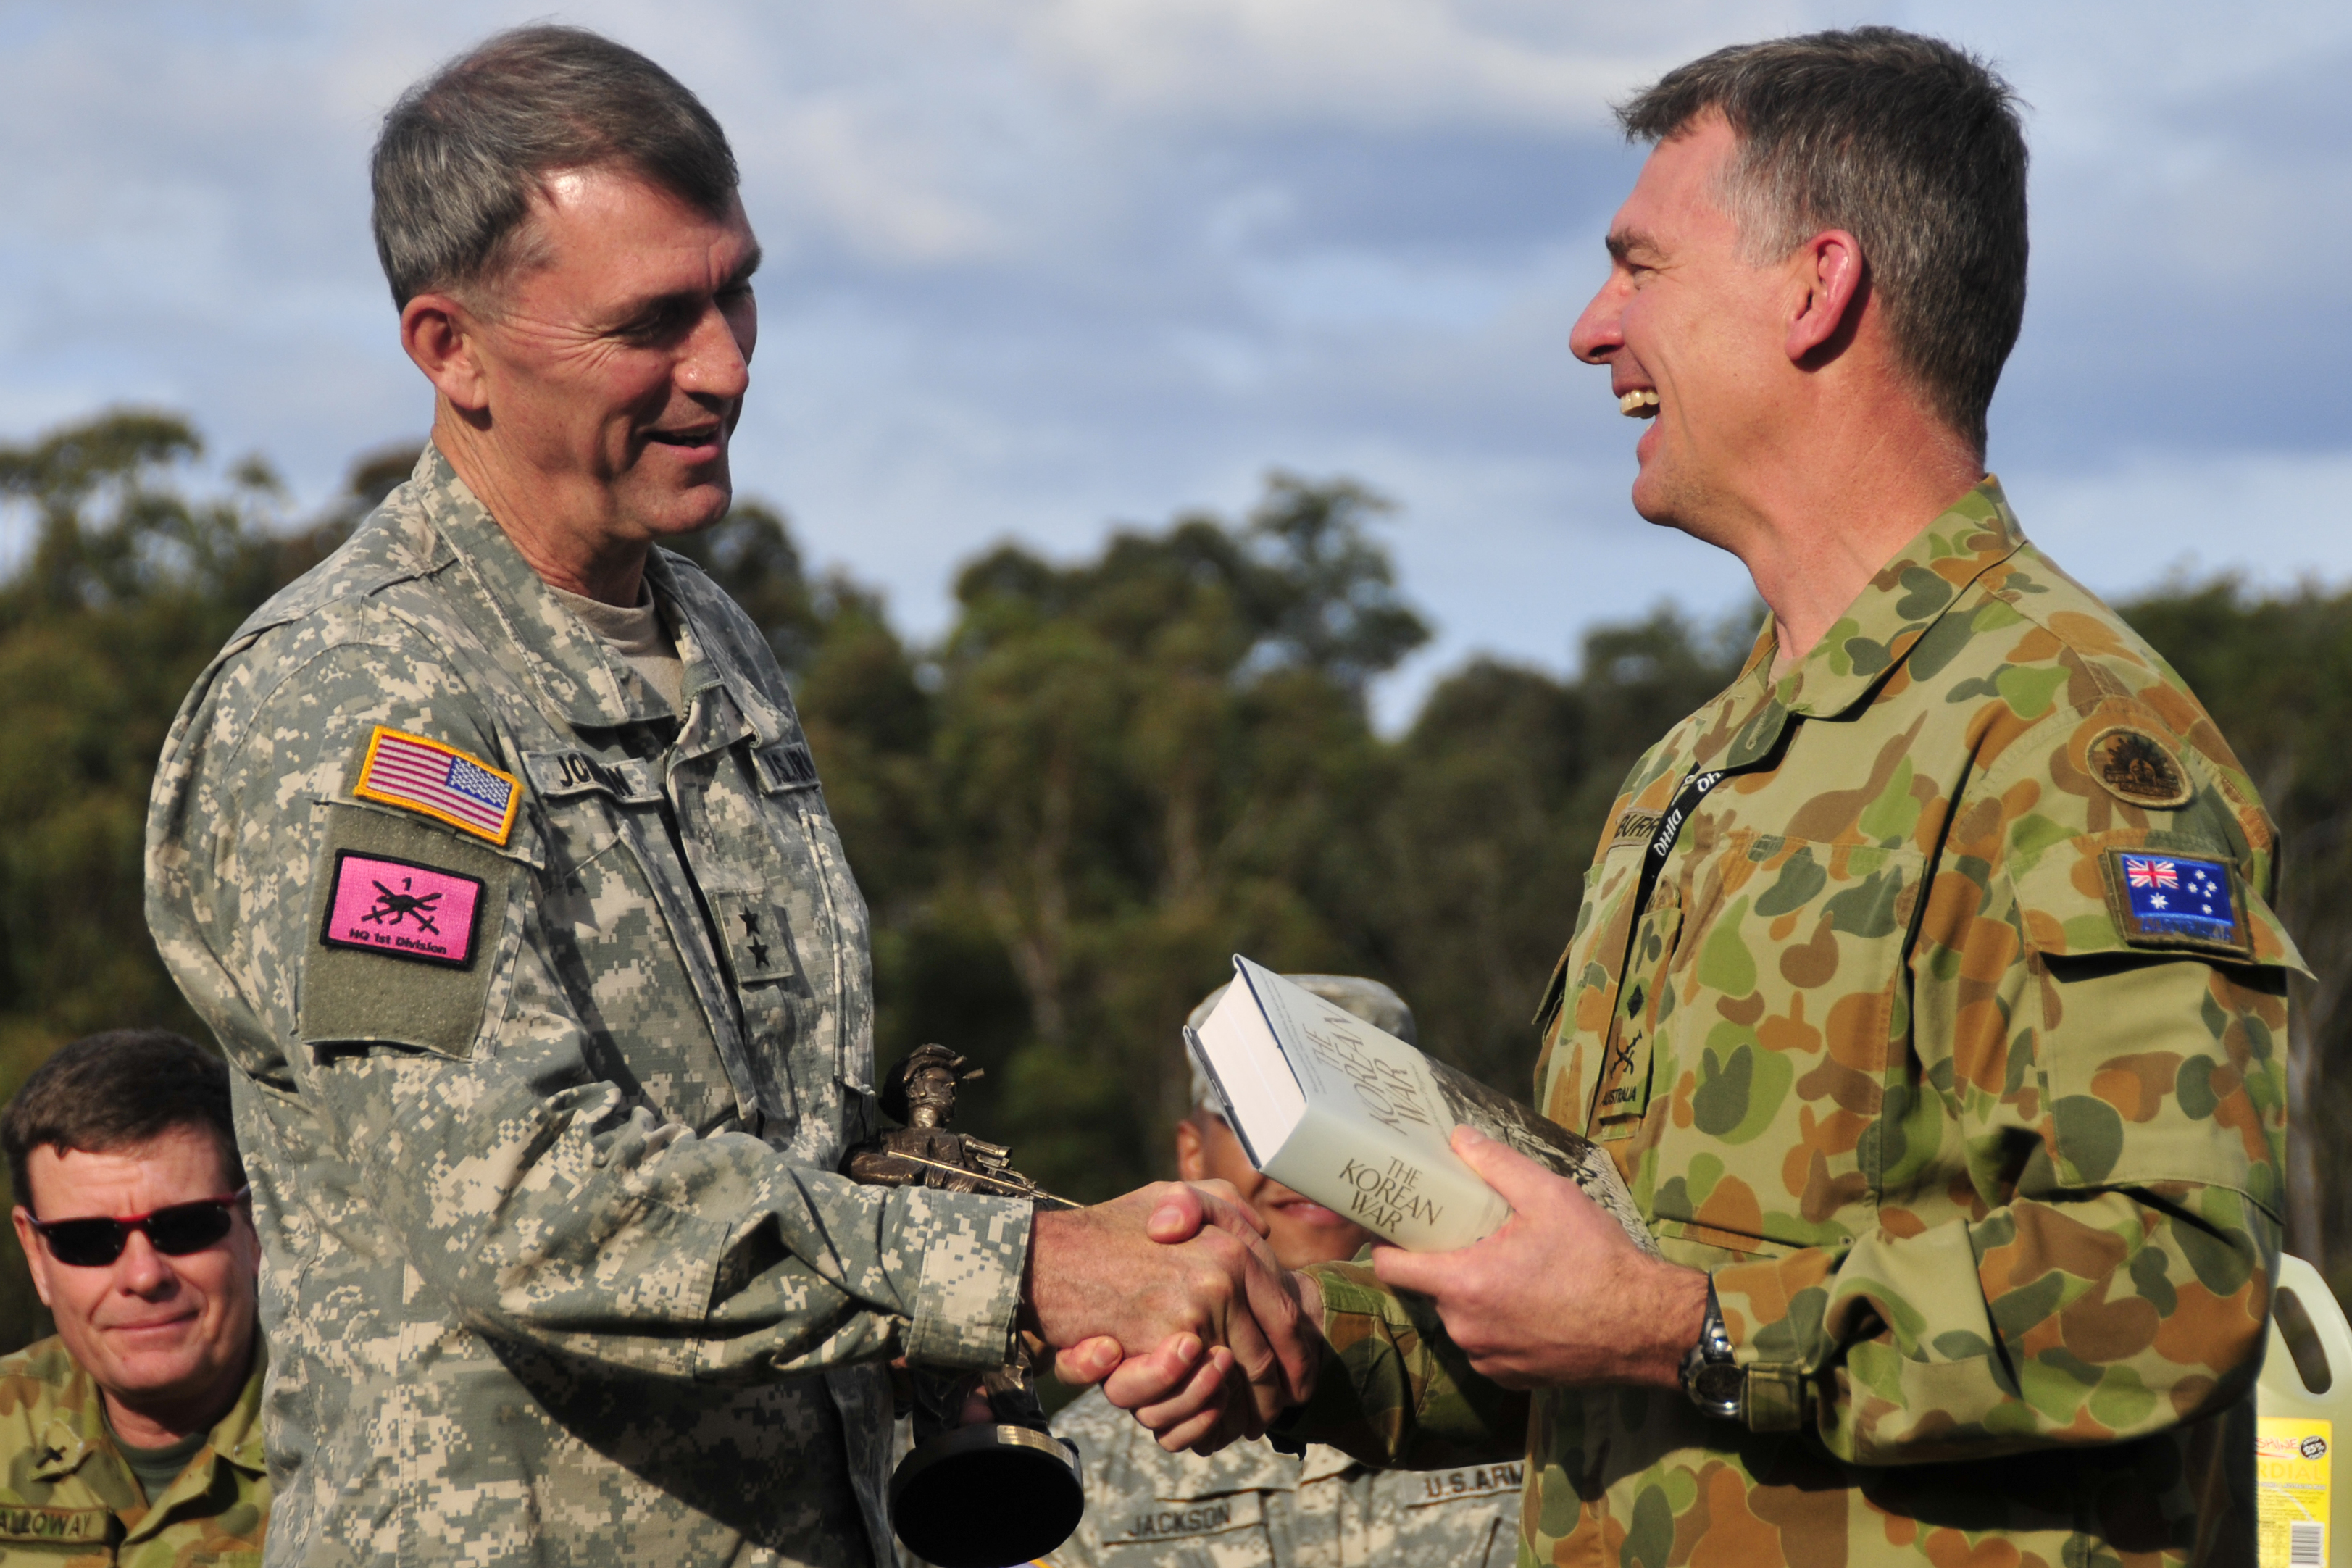 File:40th Infantry Division commander and Australian CFLCC commander exchange gifts 110725-A-9533S-018.jpg